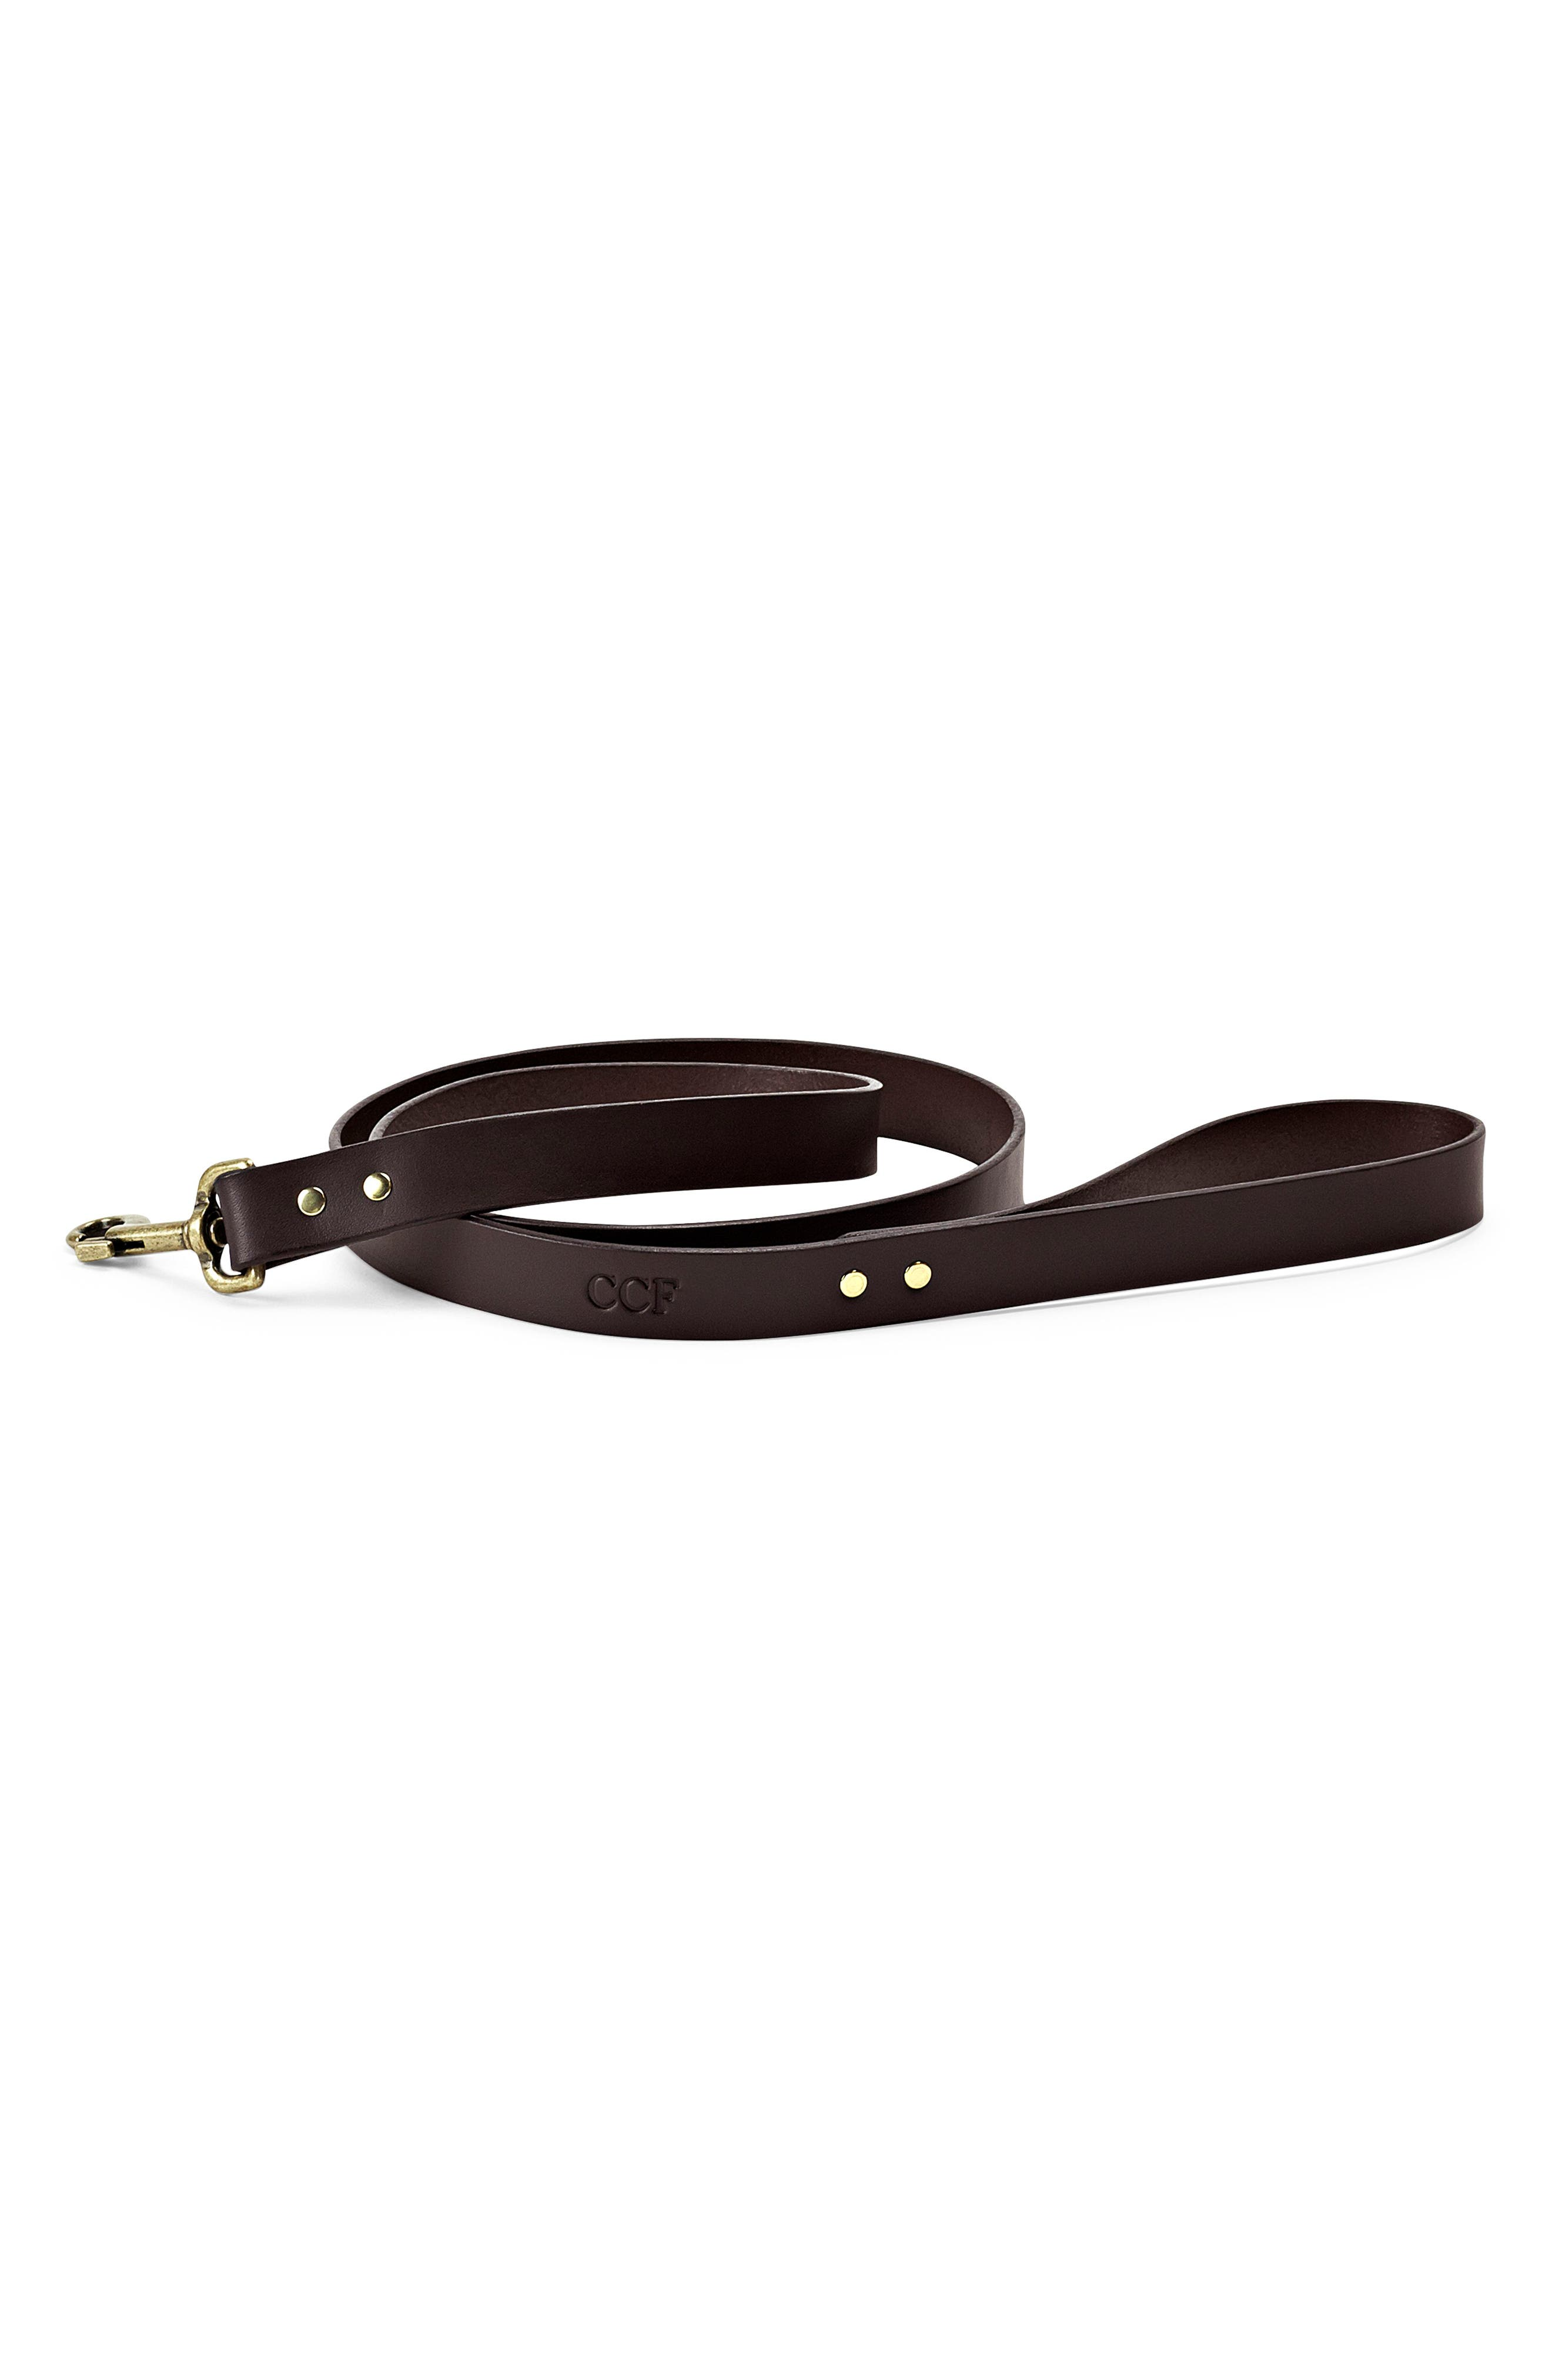 Leather Dog Leash,                             Alternate thumbnail 2, color,                             BROWN